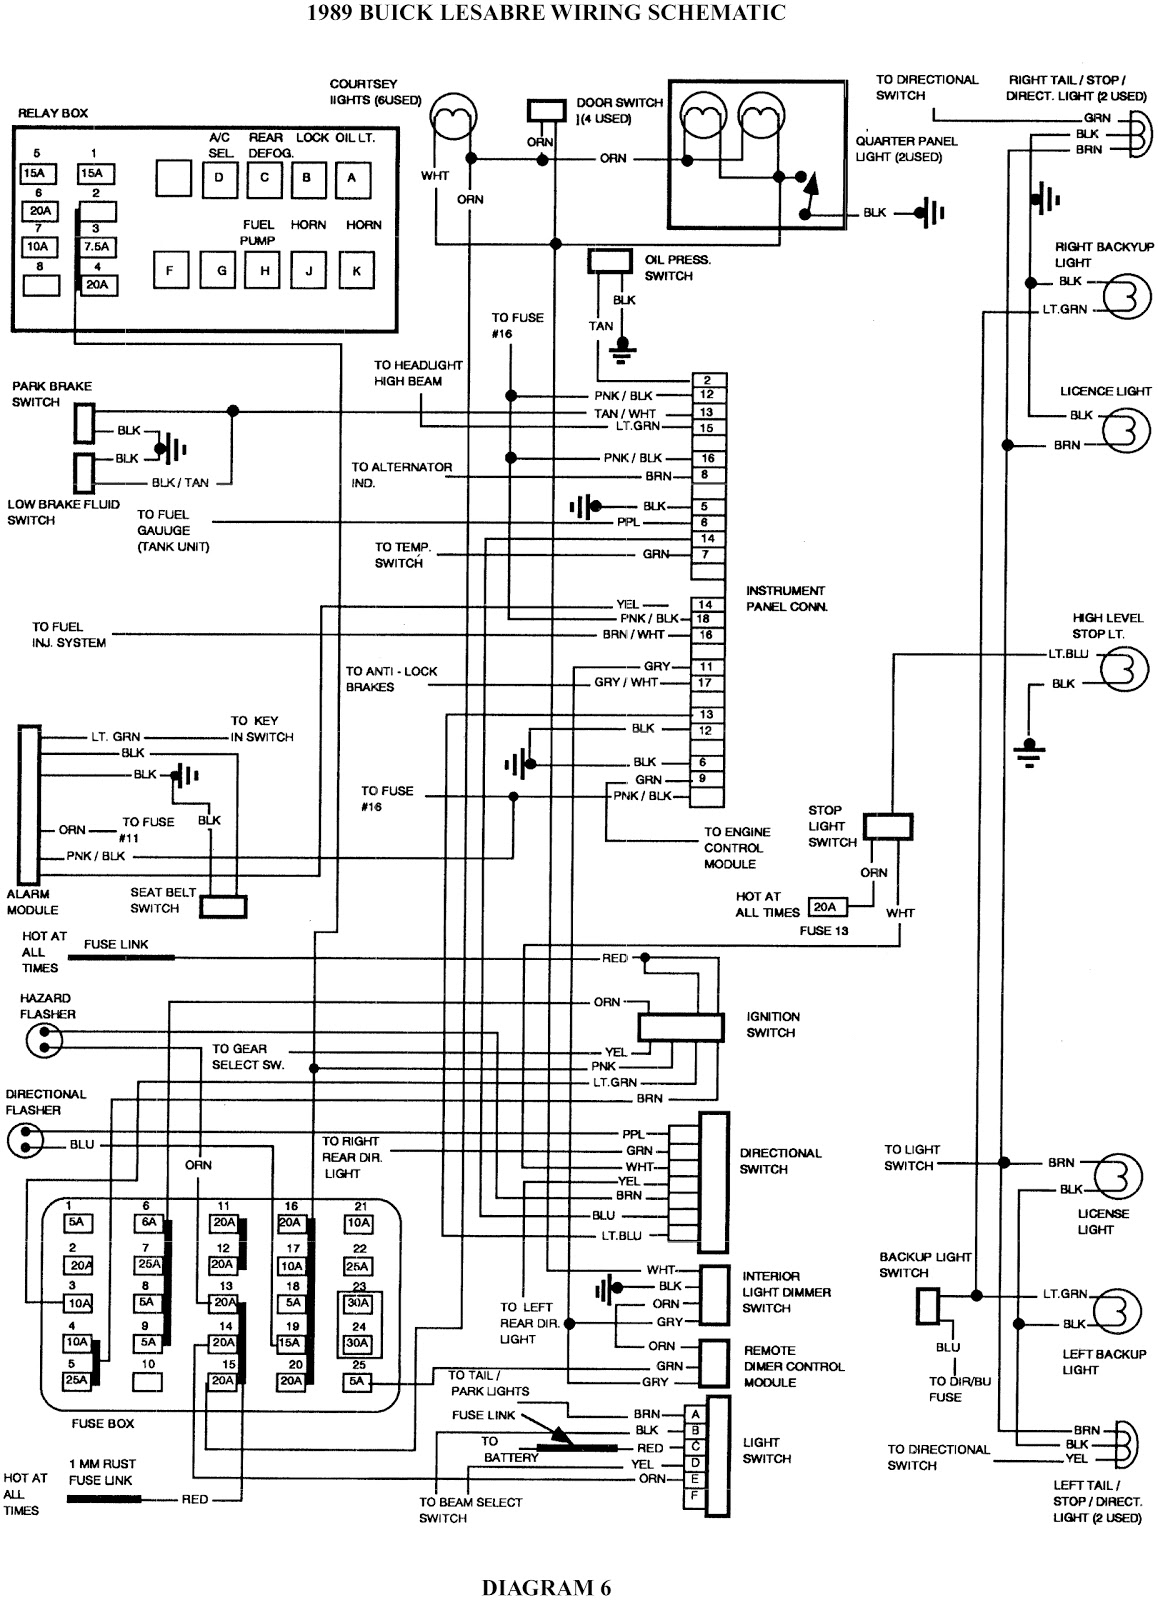 1989 Buick Lesabre Wiring Schematic on Mitsubishi Eclipse 3 0 Engine Diagram